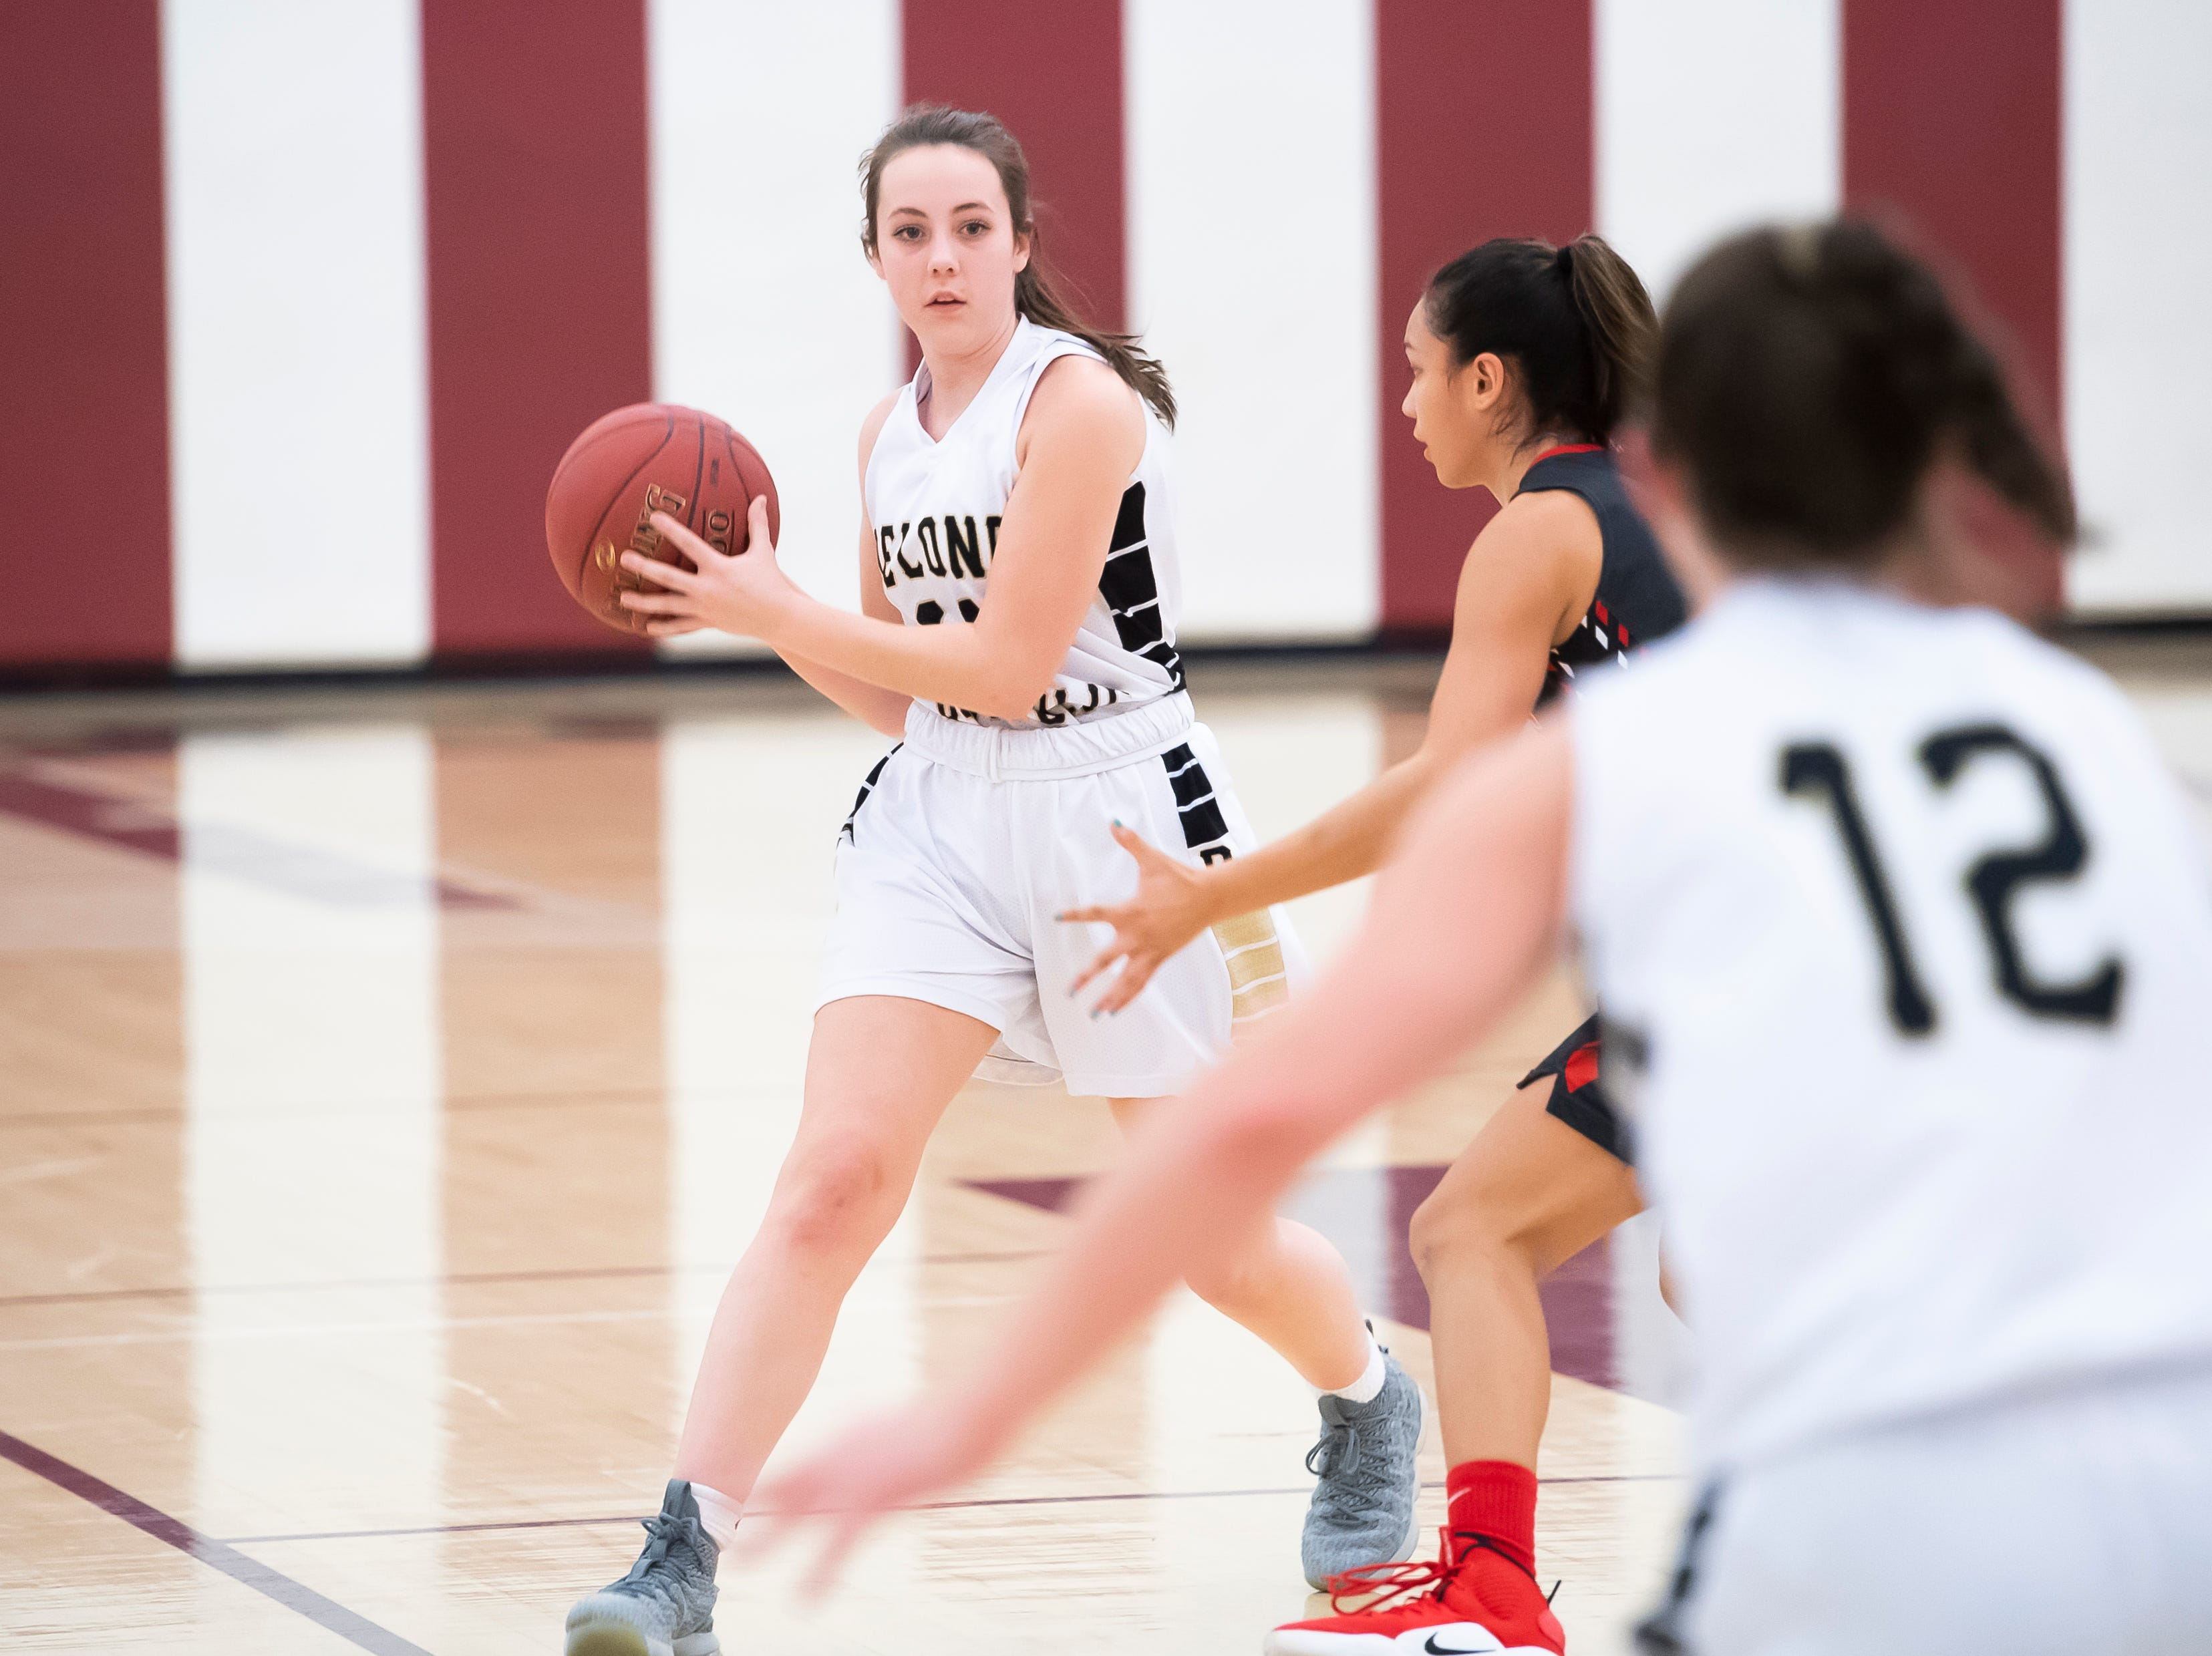 Delone Catholic's Dee McCormick looks to pass against Neshannock during a PIAA 3A quarterfinal in Altoona, Pa., on Friday, March 15, 2019. The Squirettes won 50-41.